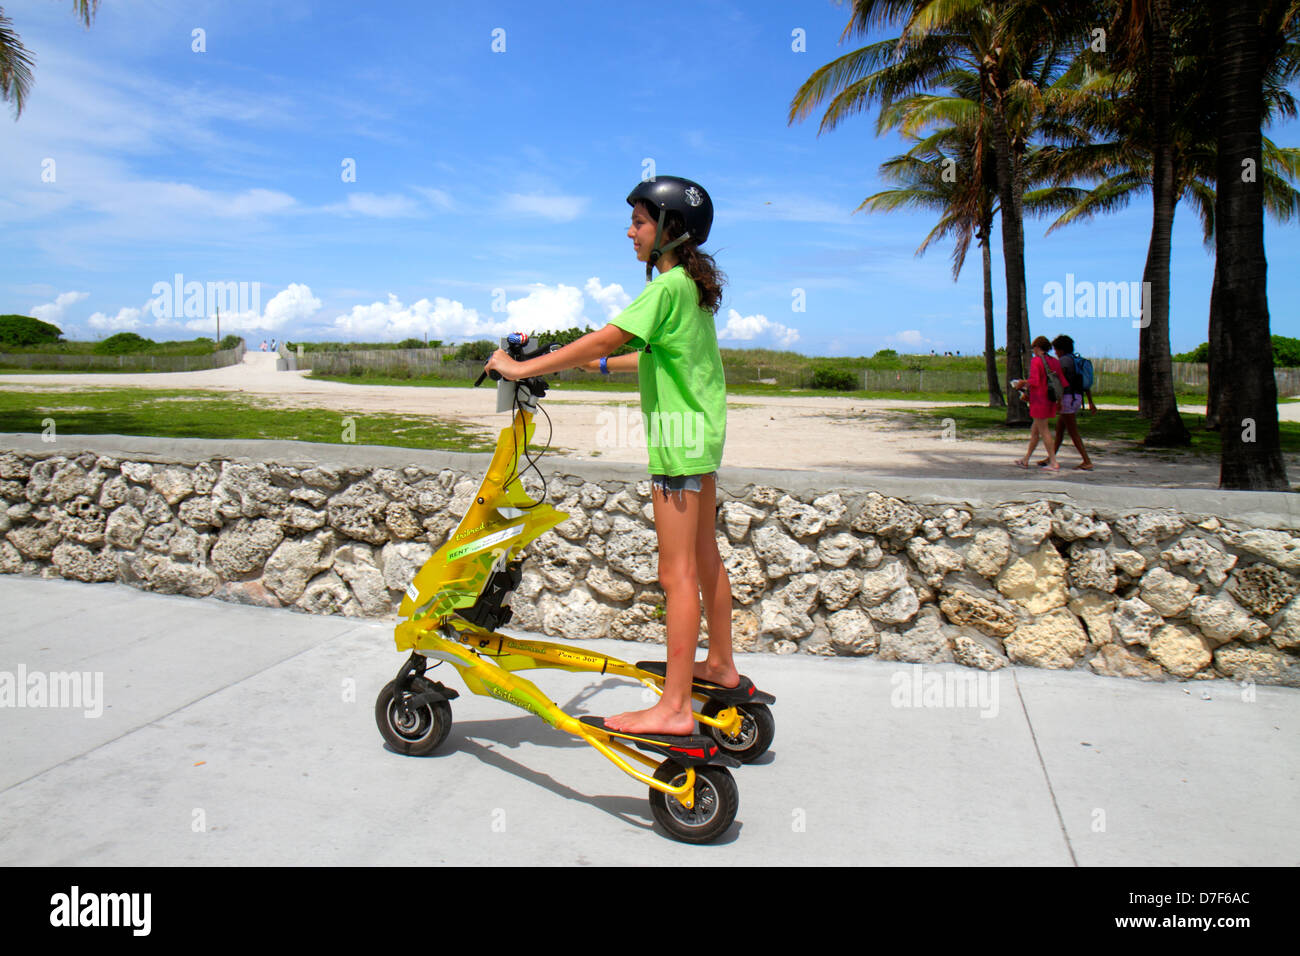 Miami Beach Florida Ocean Drive Lummus Park Tribred by Trikke electric vehicle rented rental girl riding safety - Stock Image